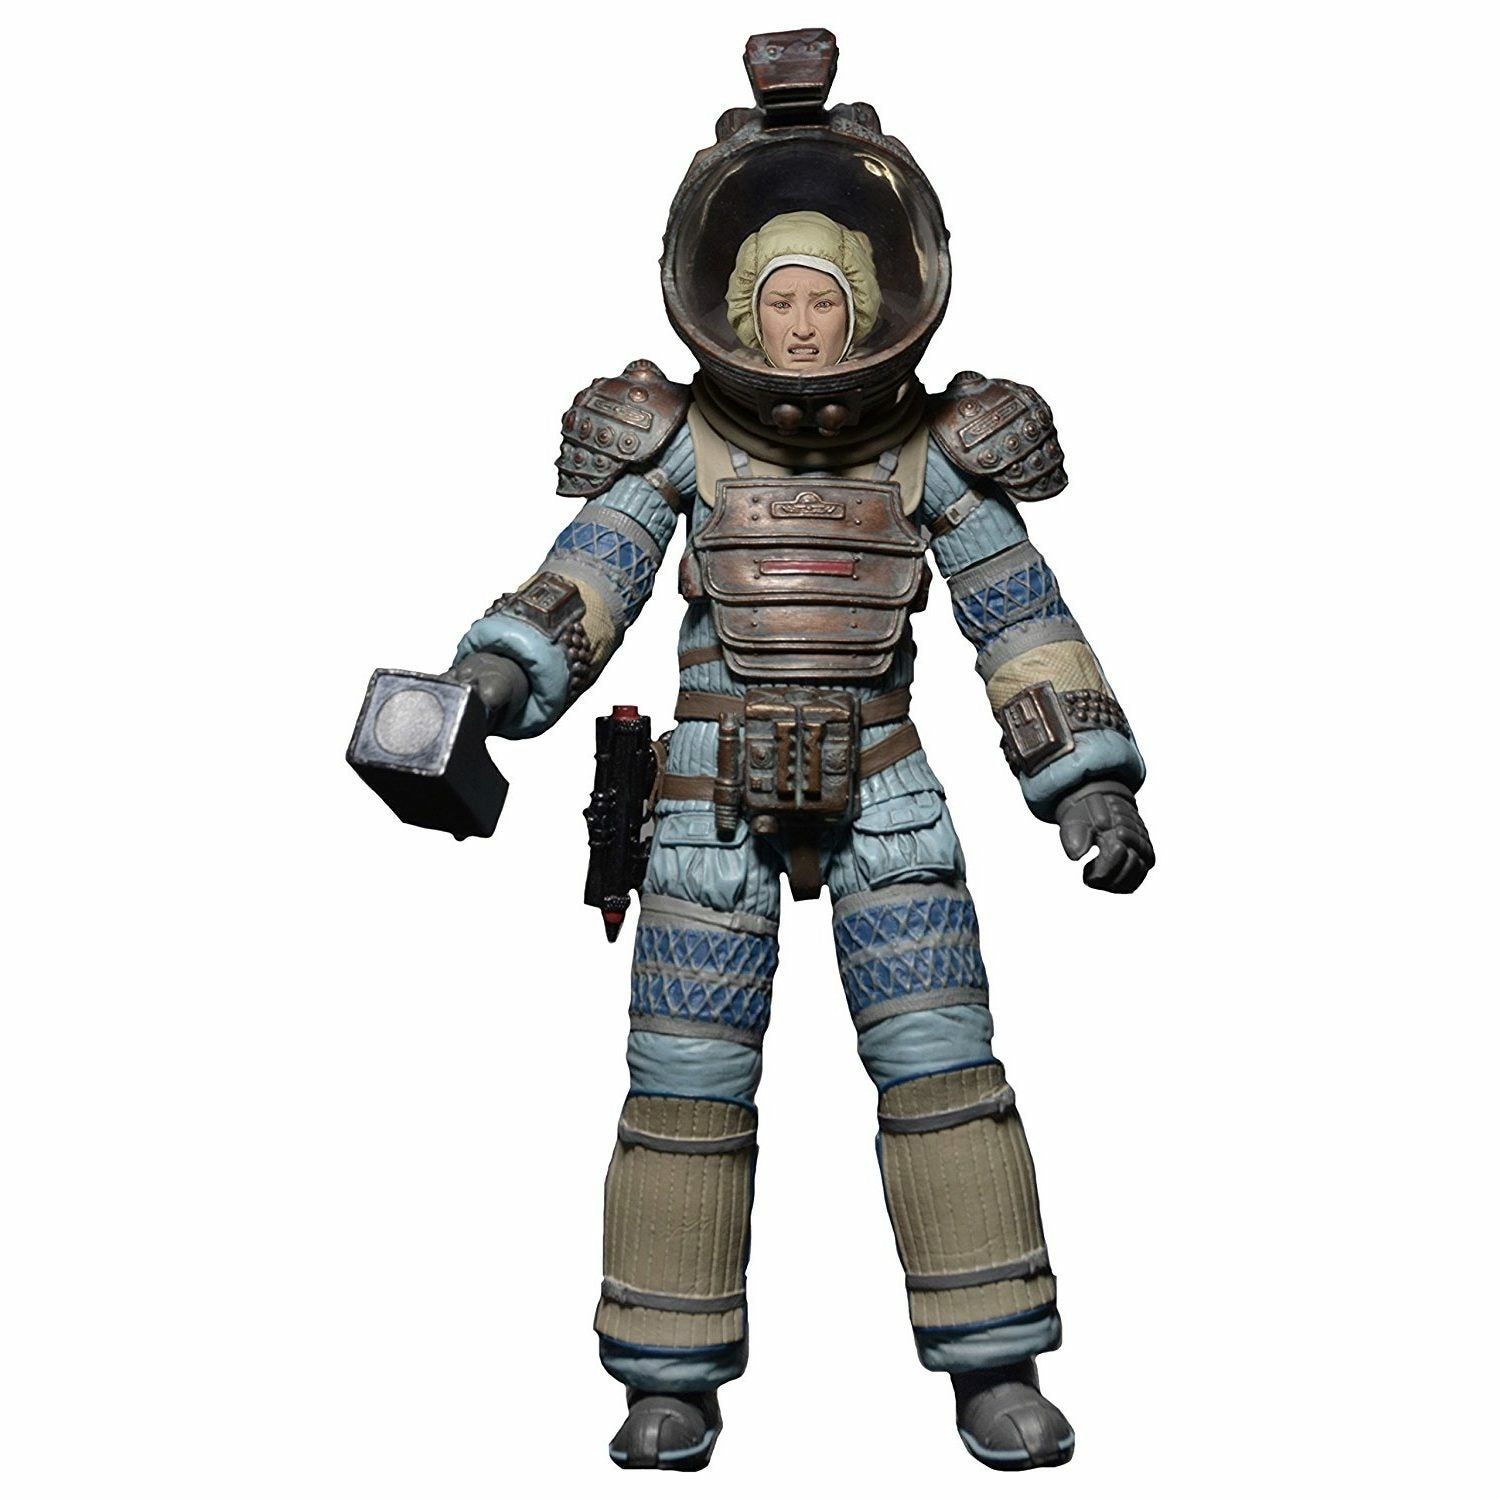 Alien Lambert Compresion Suit 7 inch Scale Action Figure